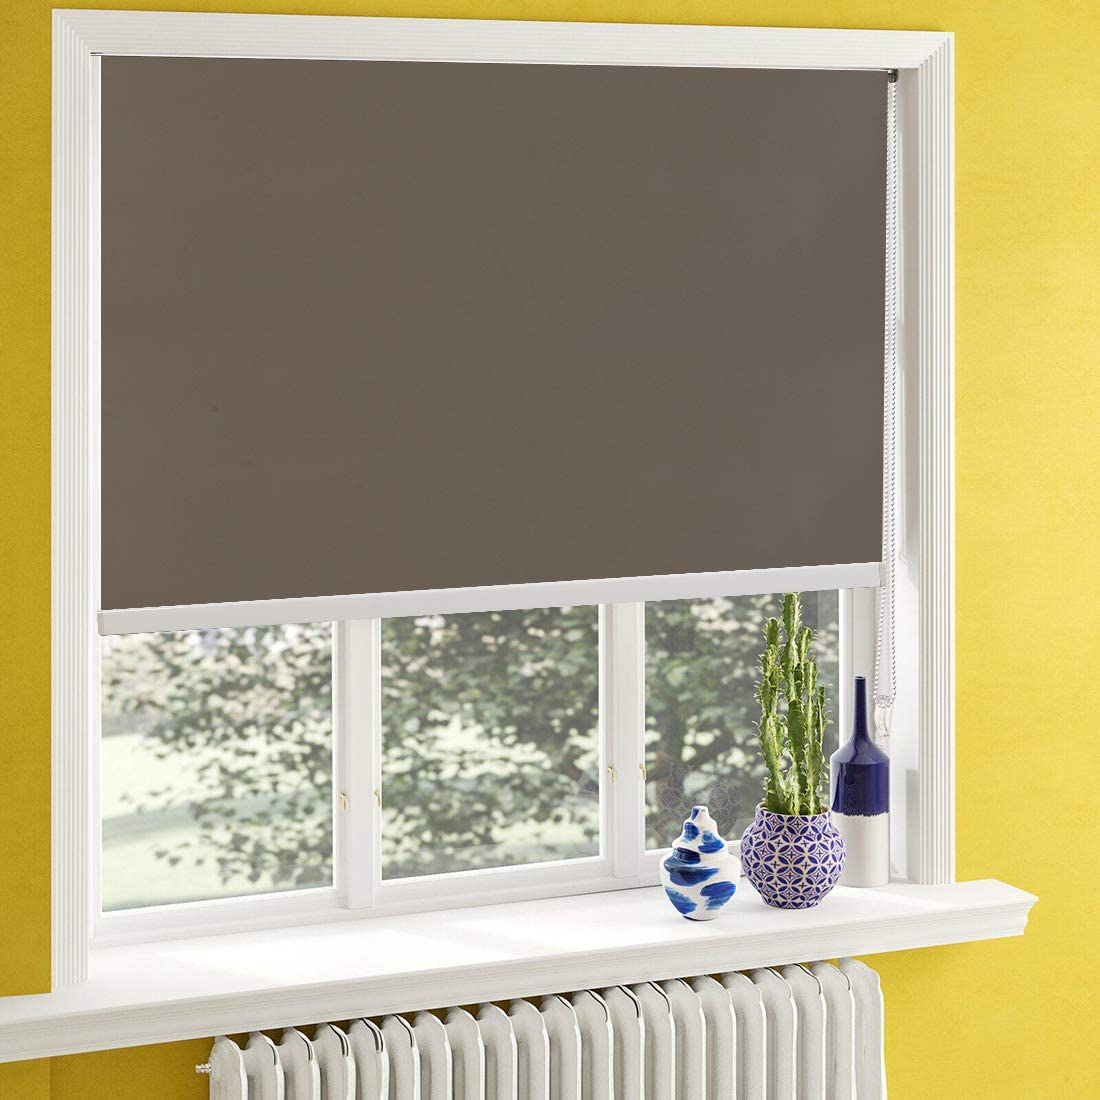 Keego Window Shades Black Out for Bedroom Room Darkening Roller Shades with Back in White Waterproof and Oil Resistant for Privacy Nursery and Kitchens Light Brown 100 Blackout,W70xH76 Inch